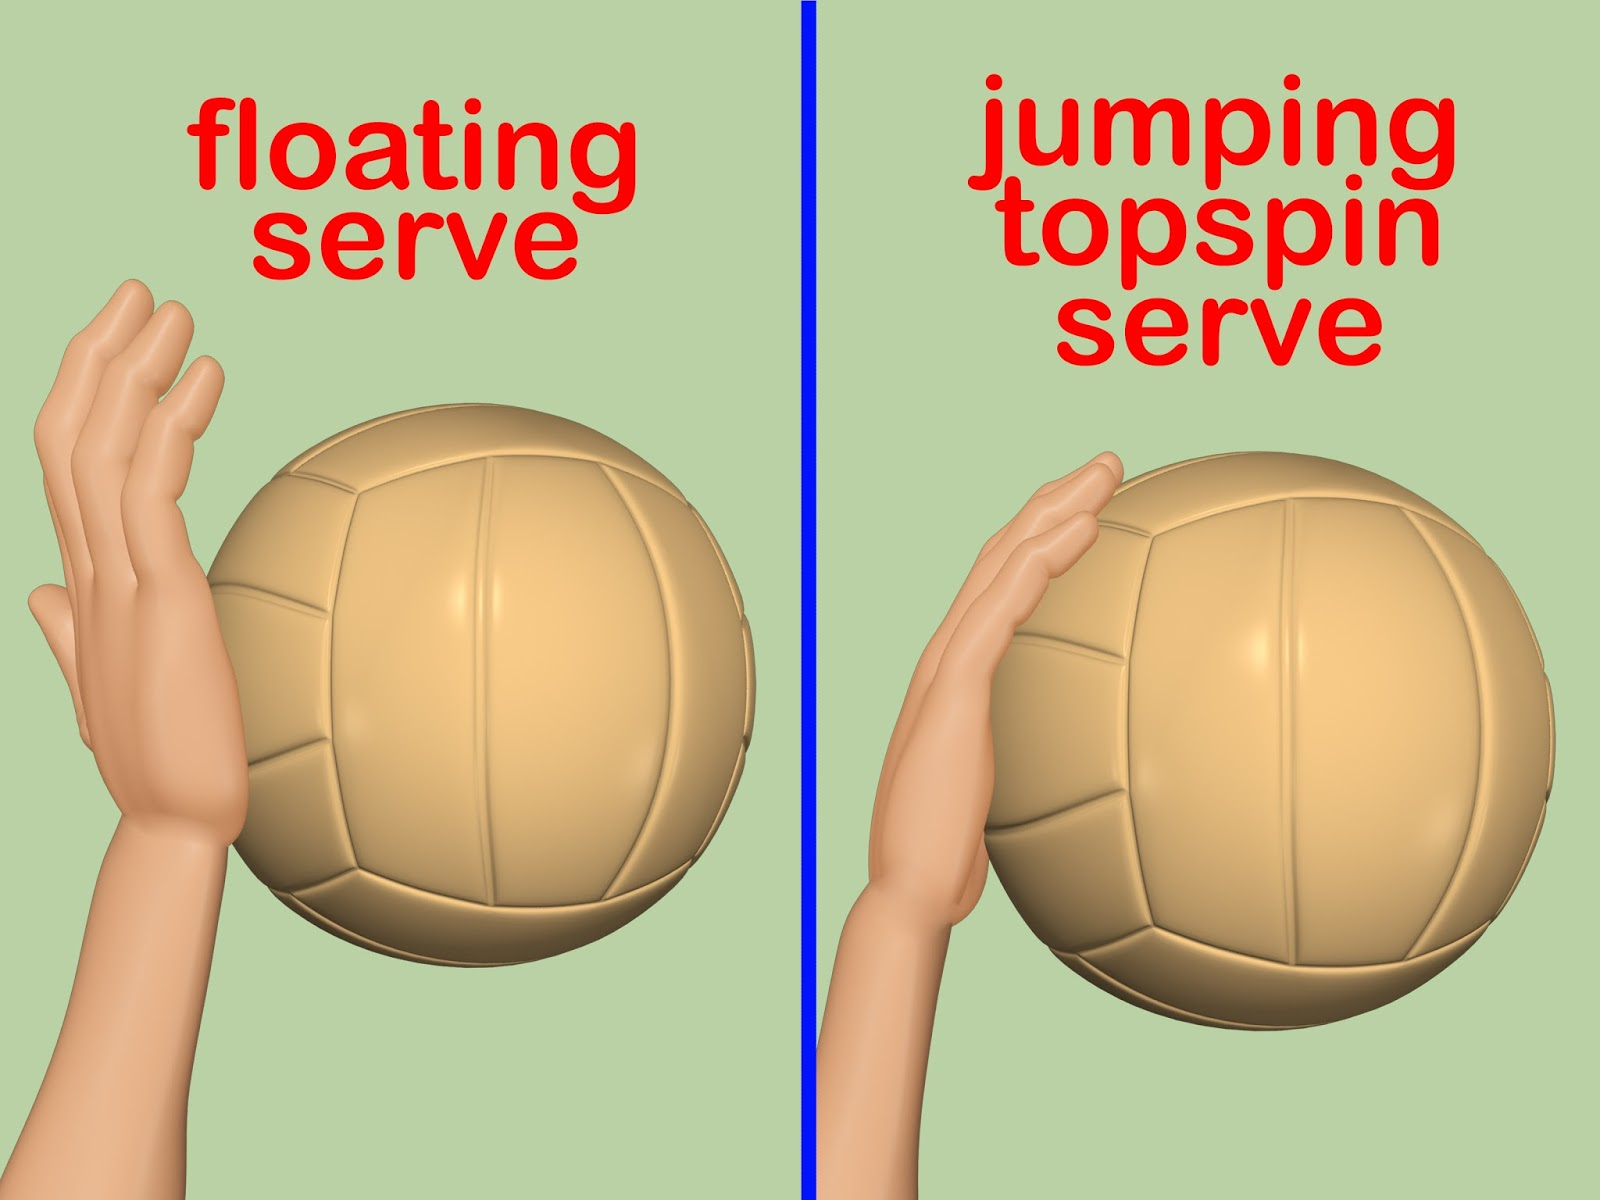 Hlpe 3531 Biomechanics Blog What Are The Biomechanics Behind Performing A Successful Overhead Volleyball Serve